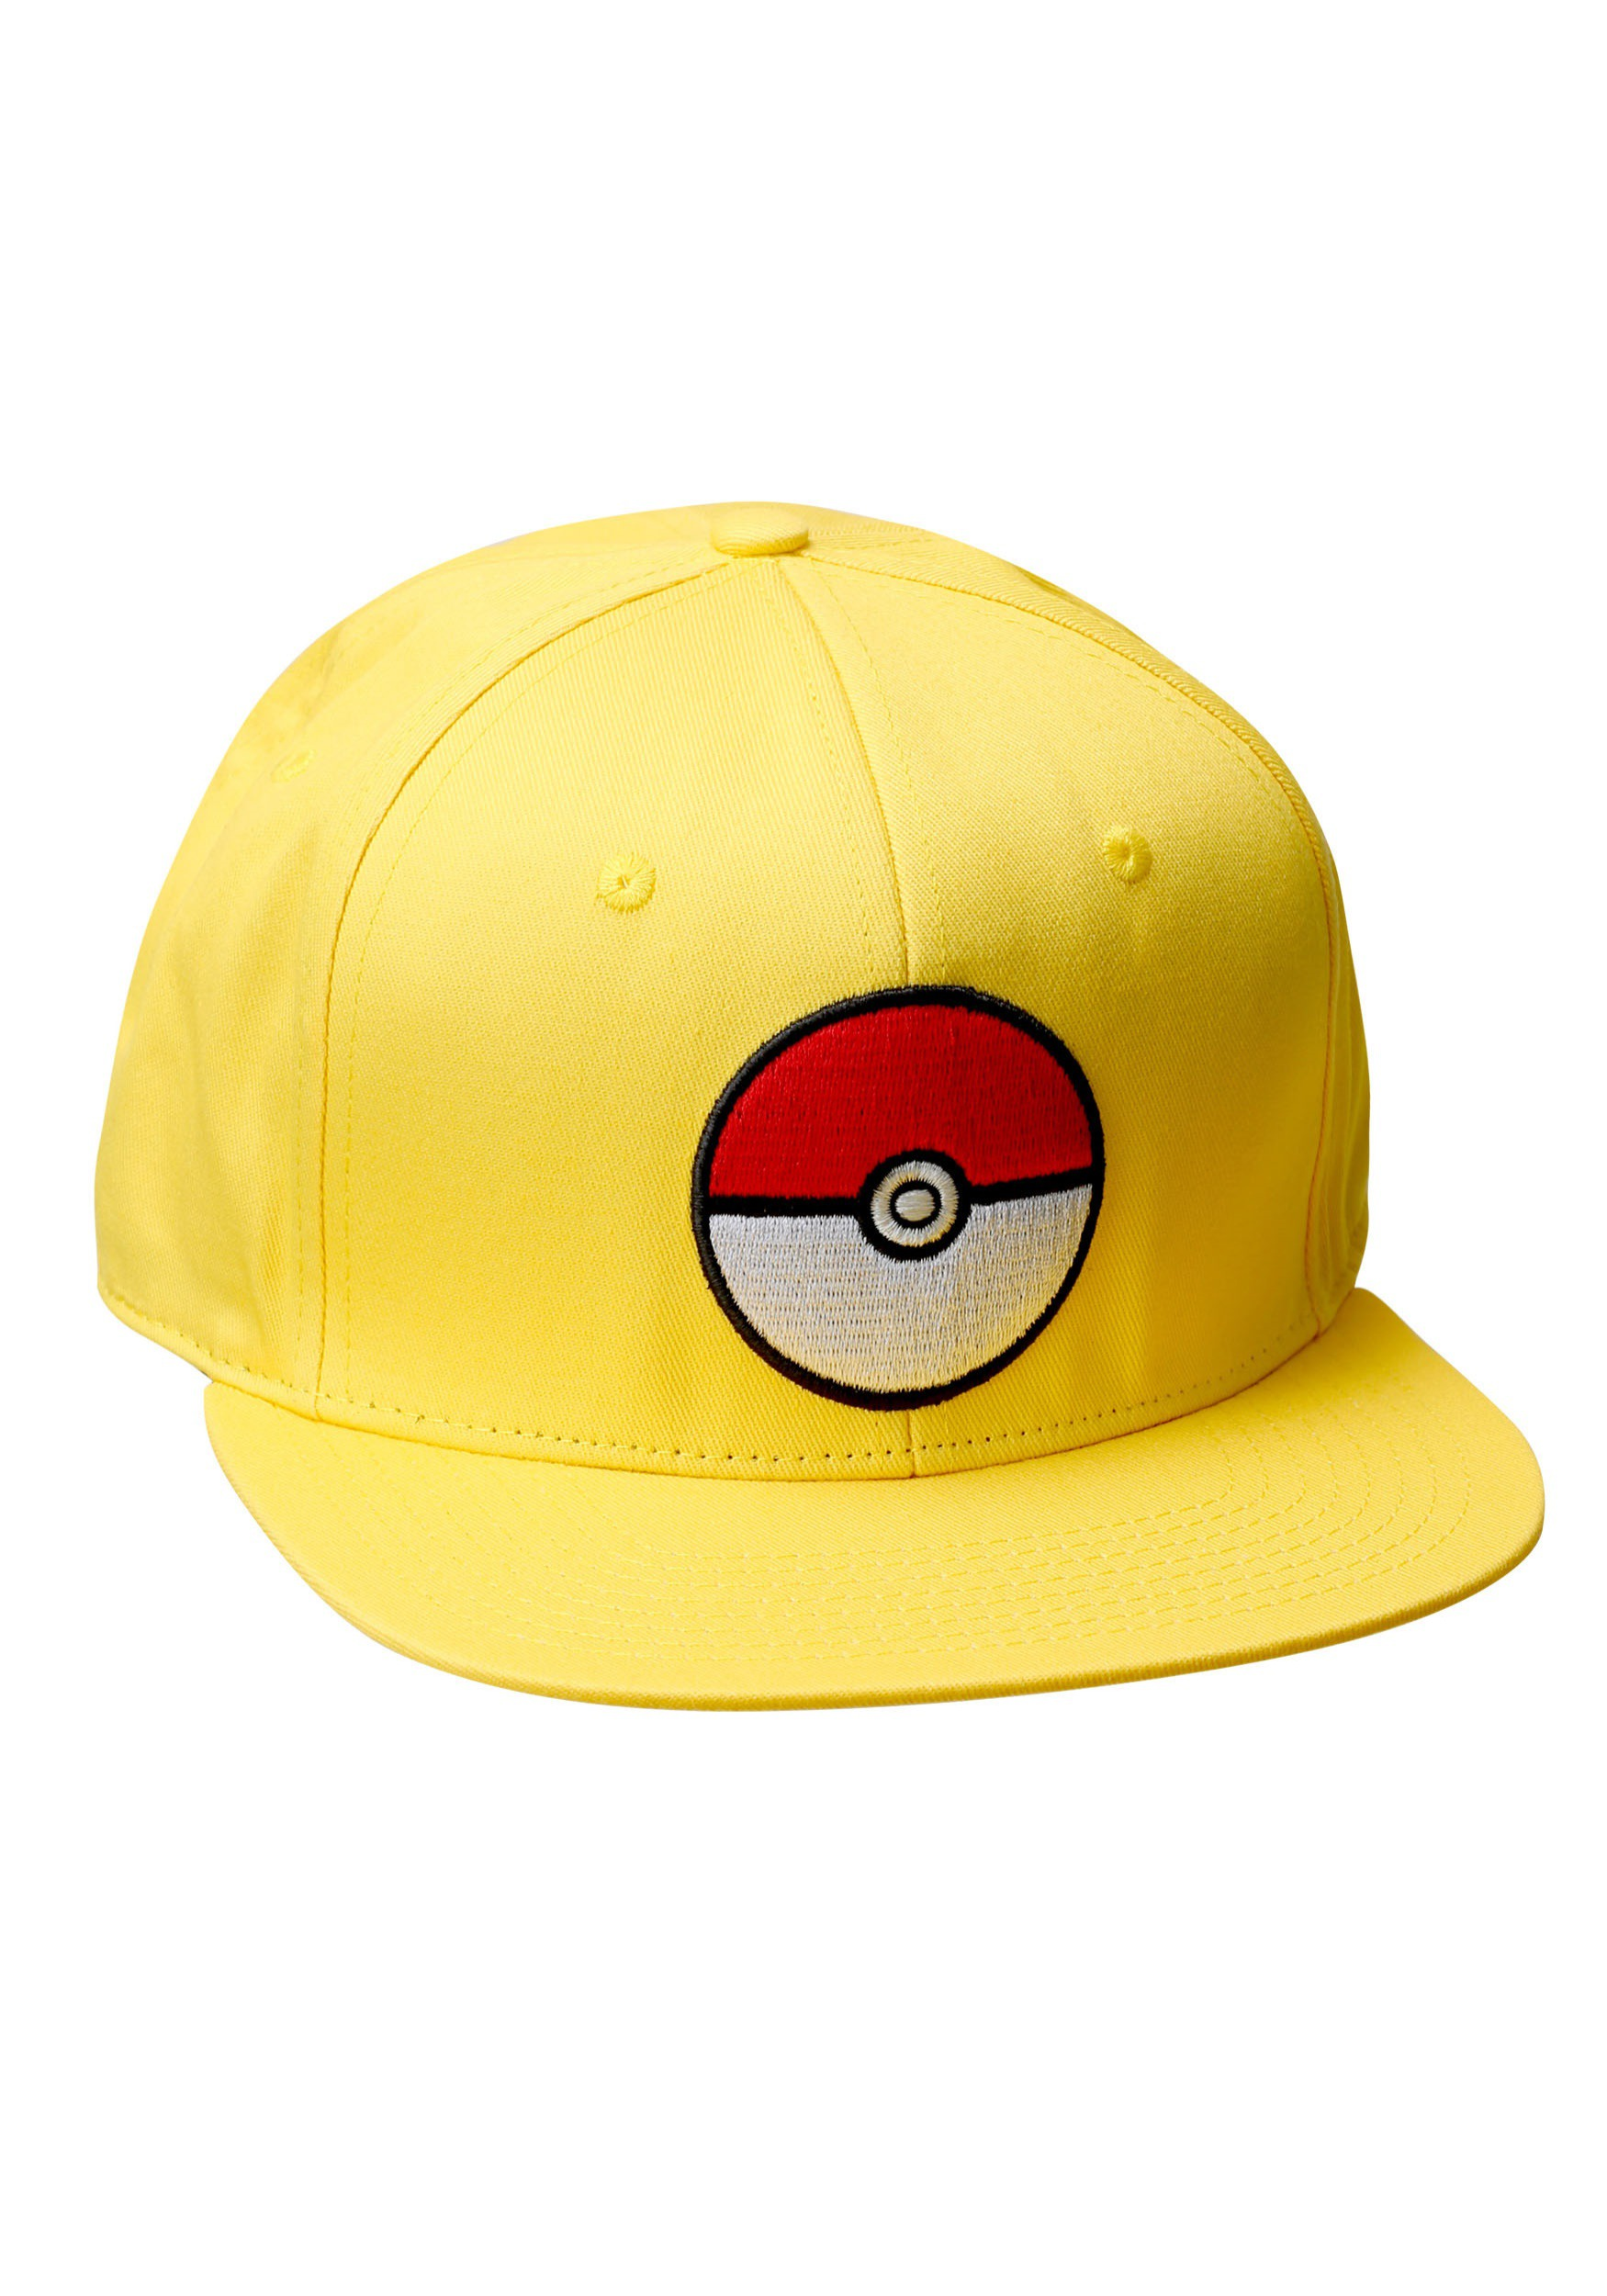 Pokemon Pokeball Trainer Yellow Snapback Hat BWSB4XG1POK00RE00